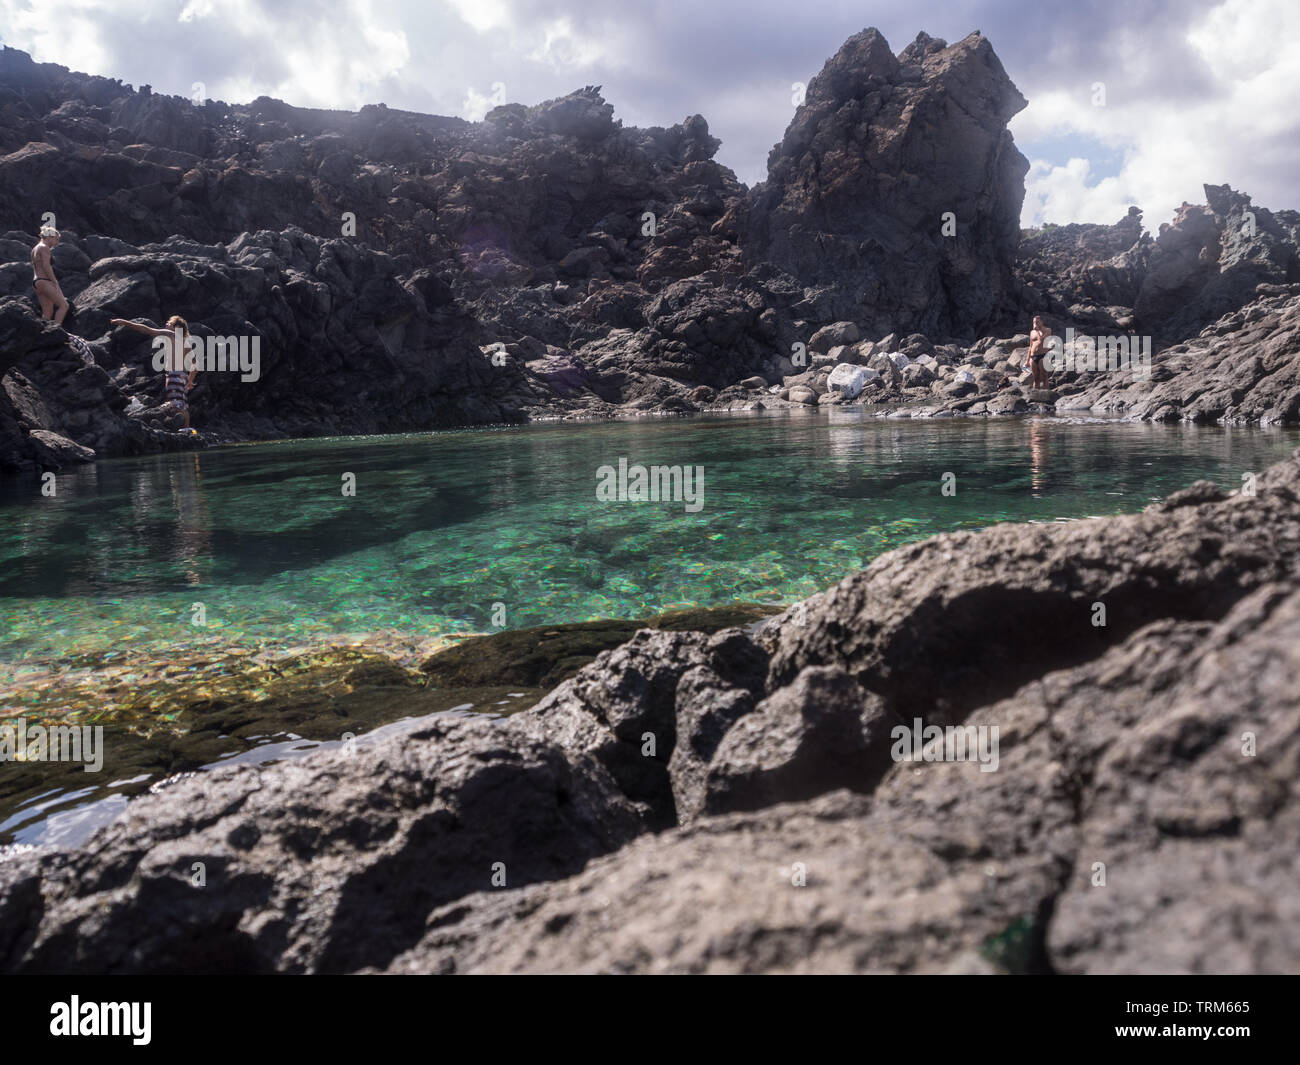 Natural ponf of ondine, in Pantelleria, Italy. Mediterranean landscape. unfaithful love and betrayal - Stock Image